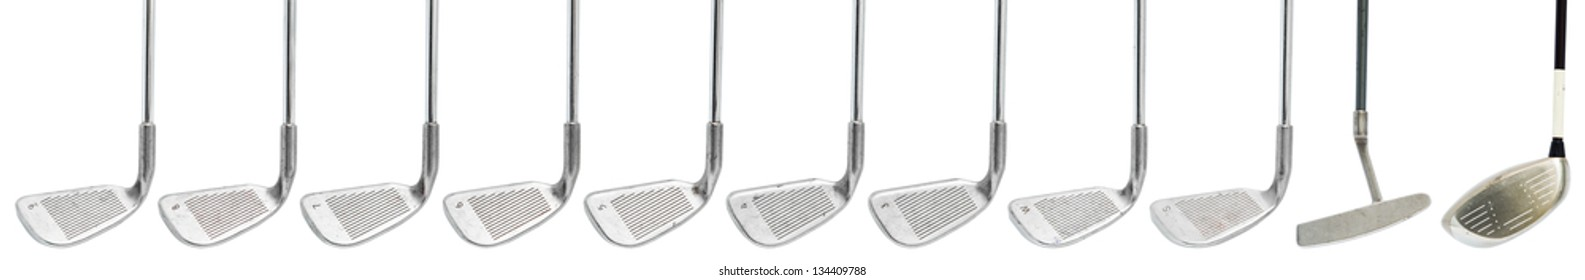 worn out golf clubs on white background